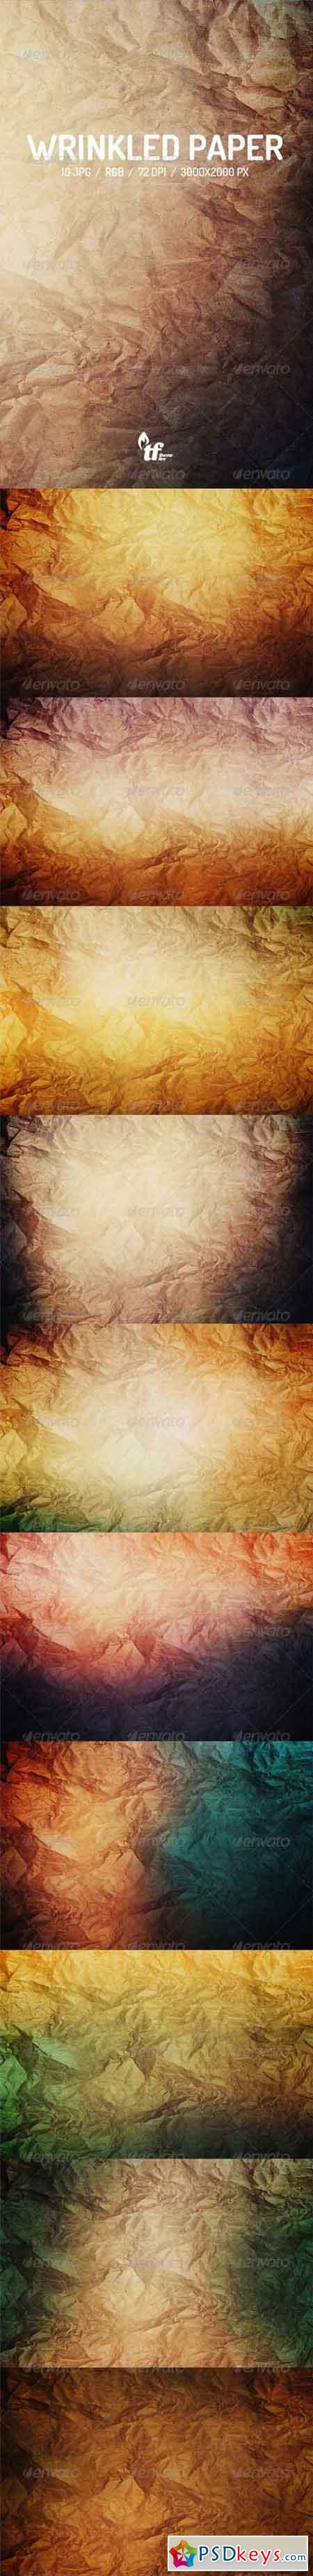 Wrinkled Paper Backgrounds 7864185